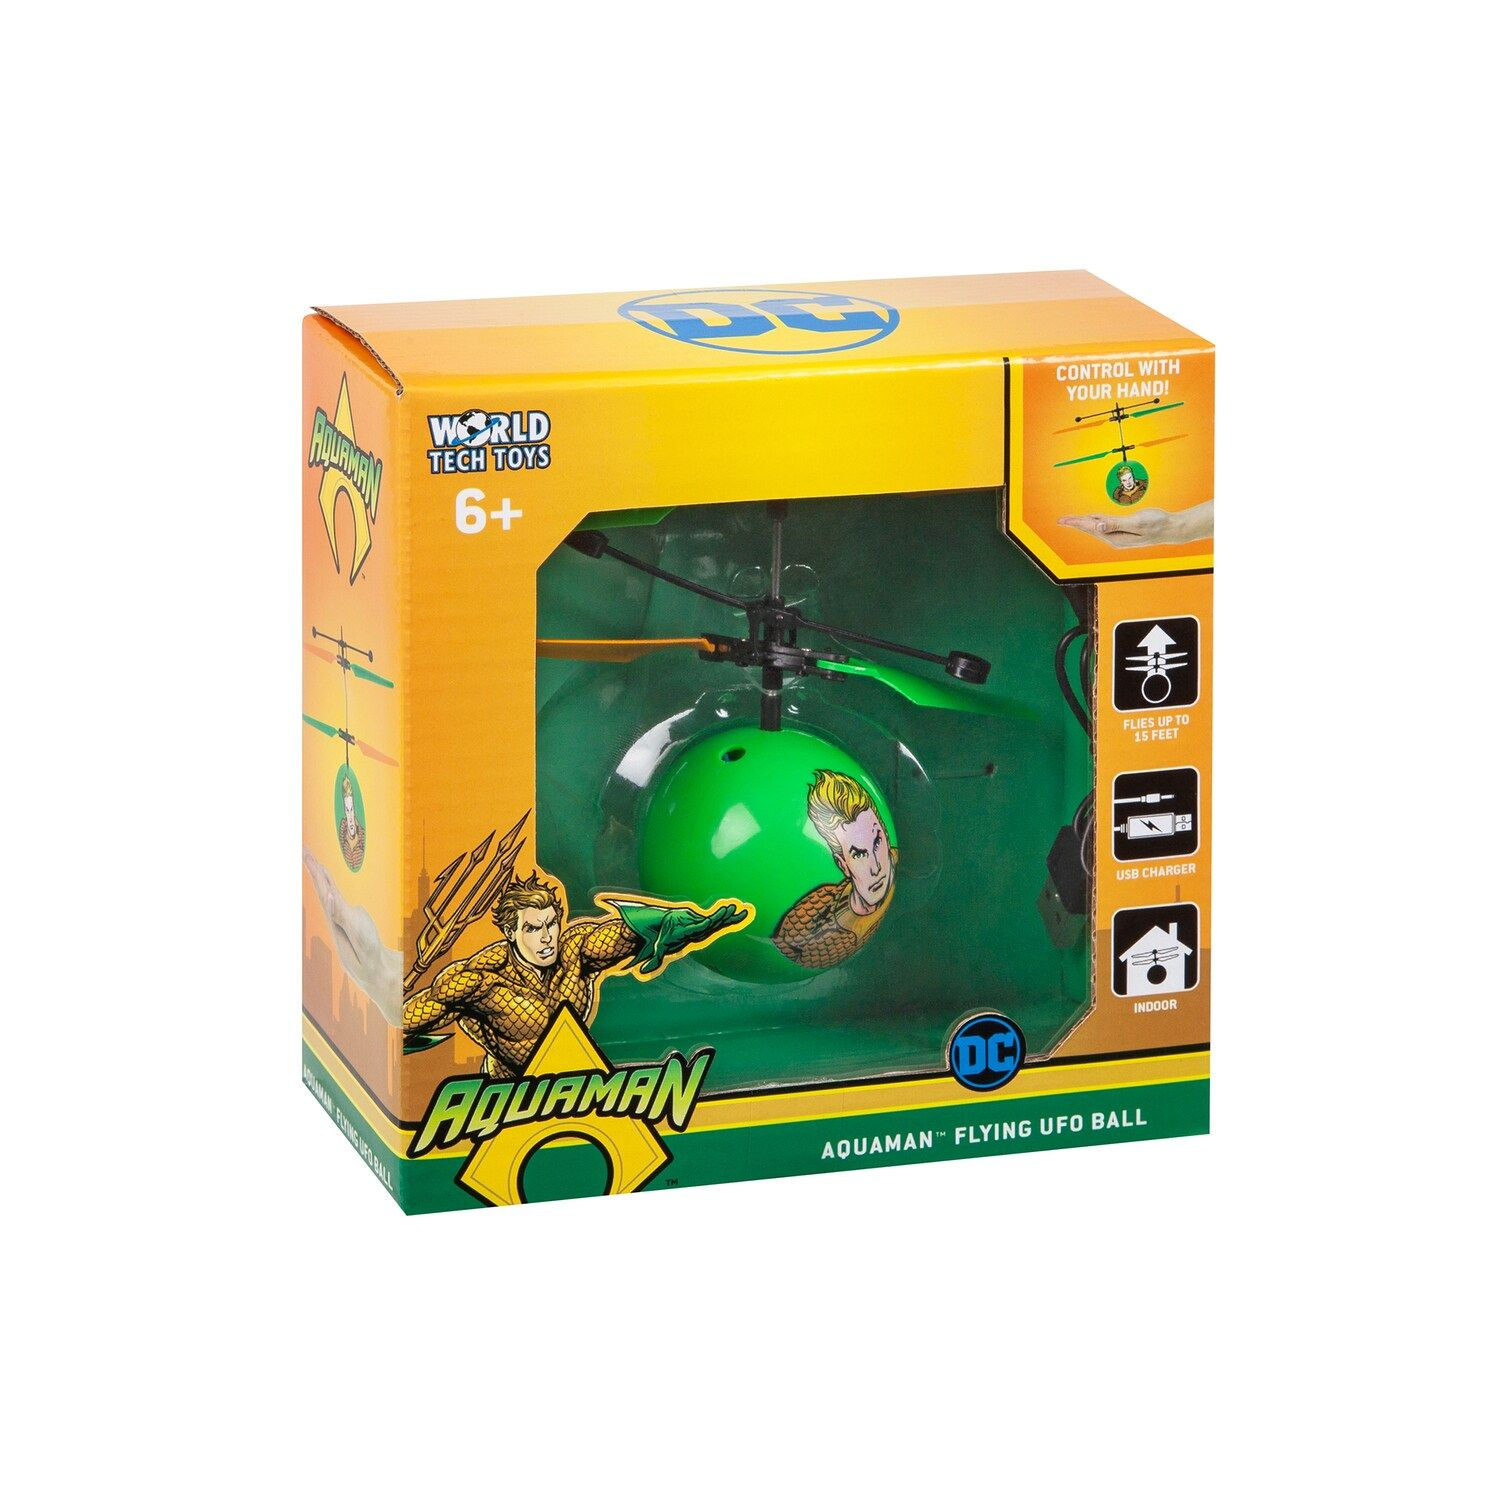 World Tech Toys AquaMan Heli-Ball #techtoys